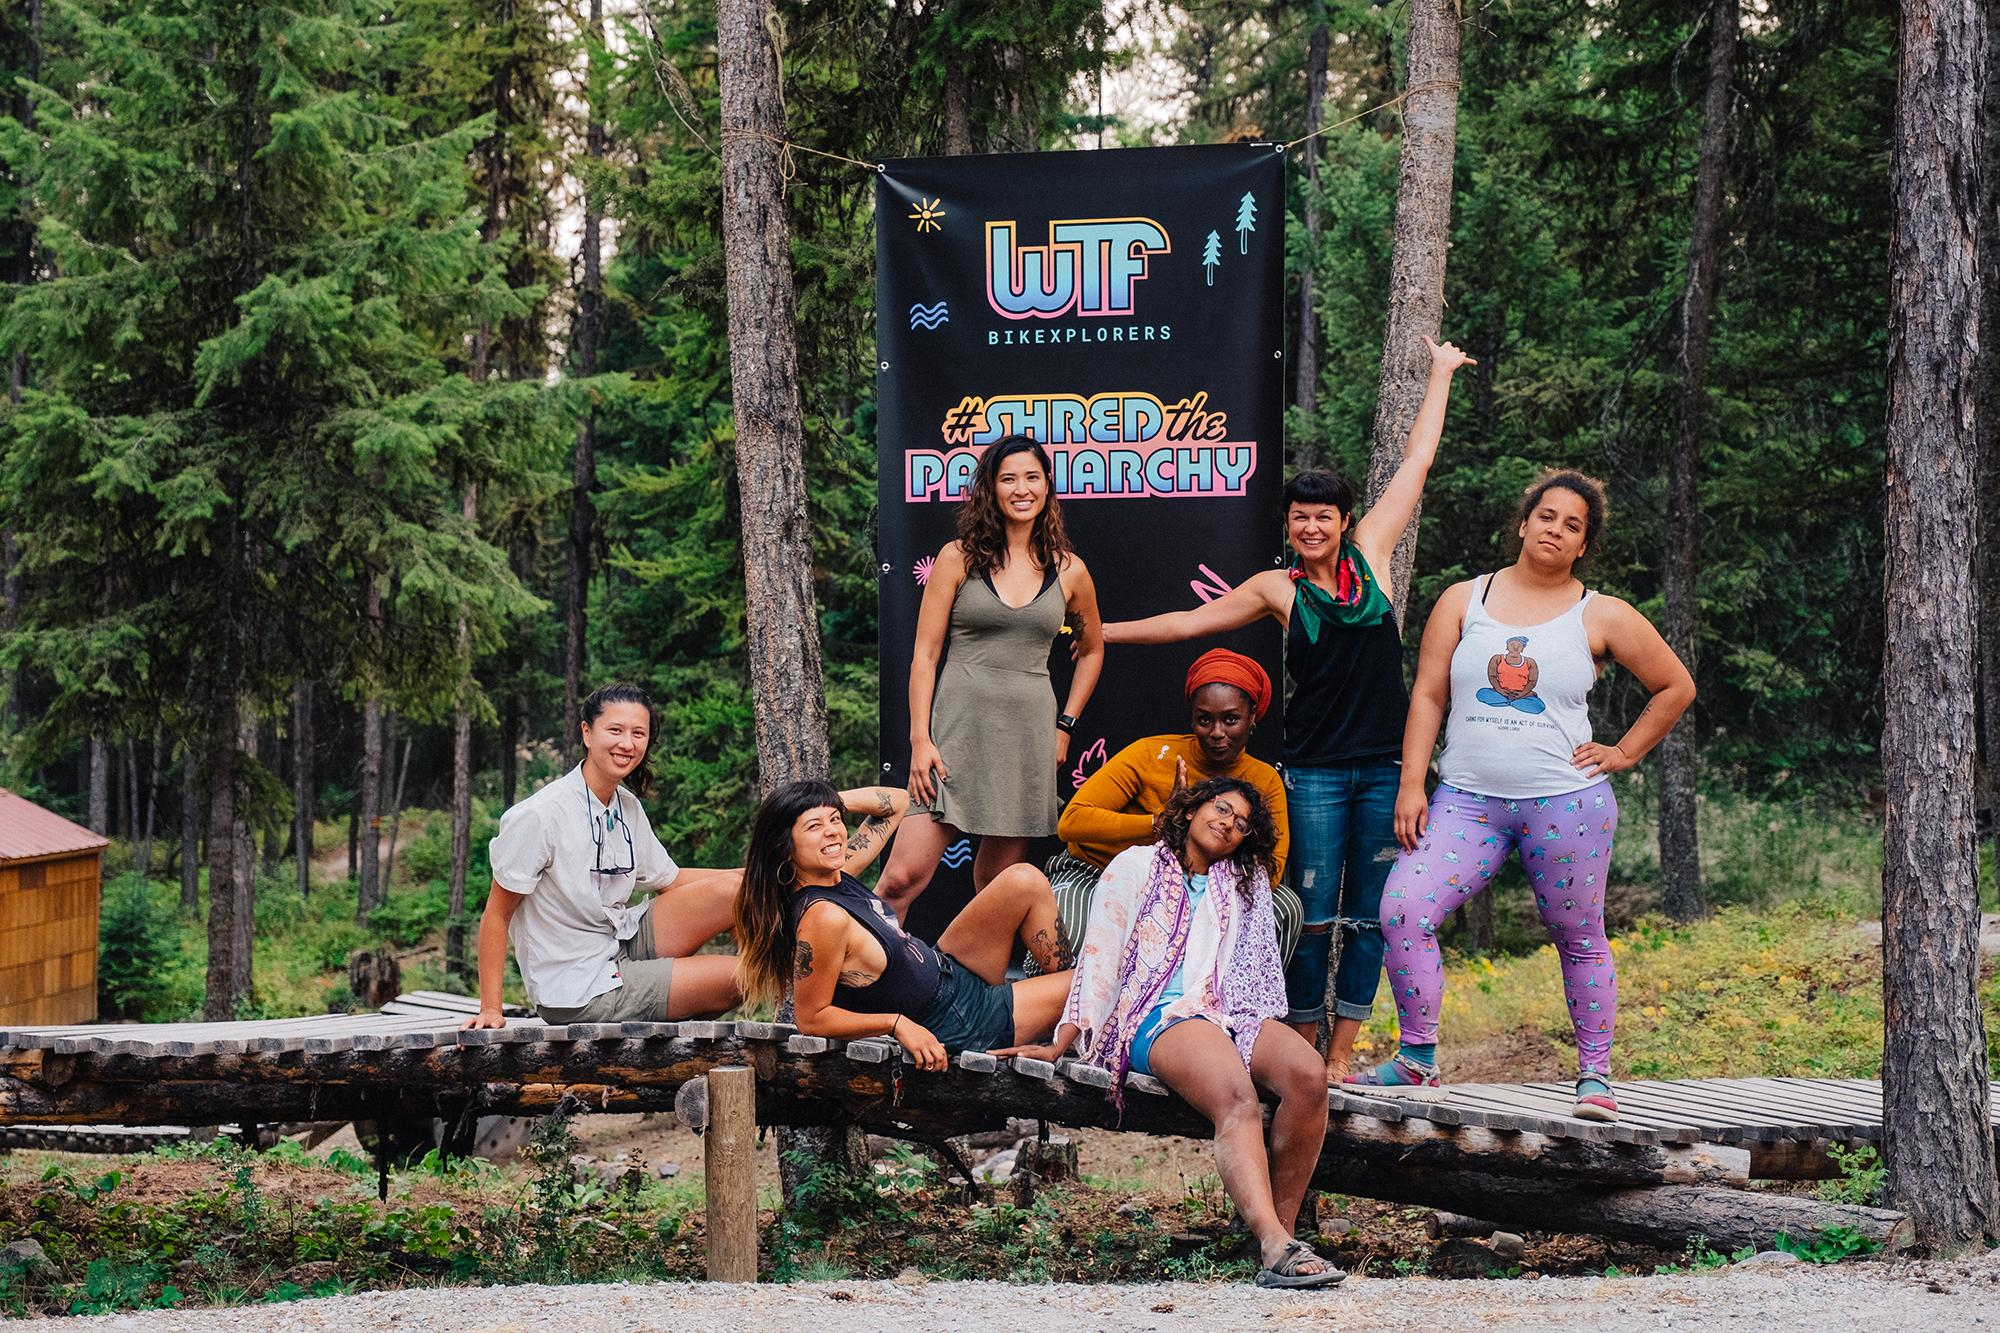 Shredding the Patriarchy: A Recap of the WTF Bikexplorers Summit